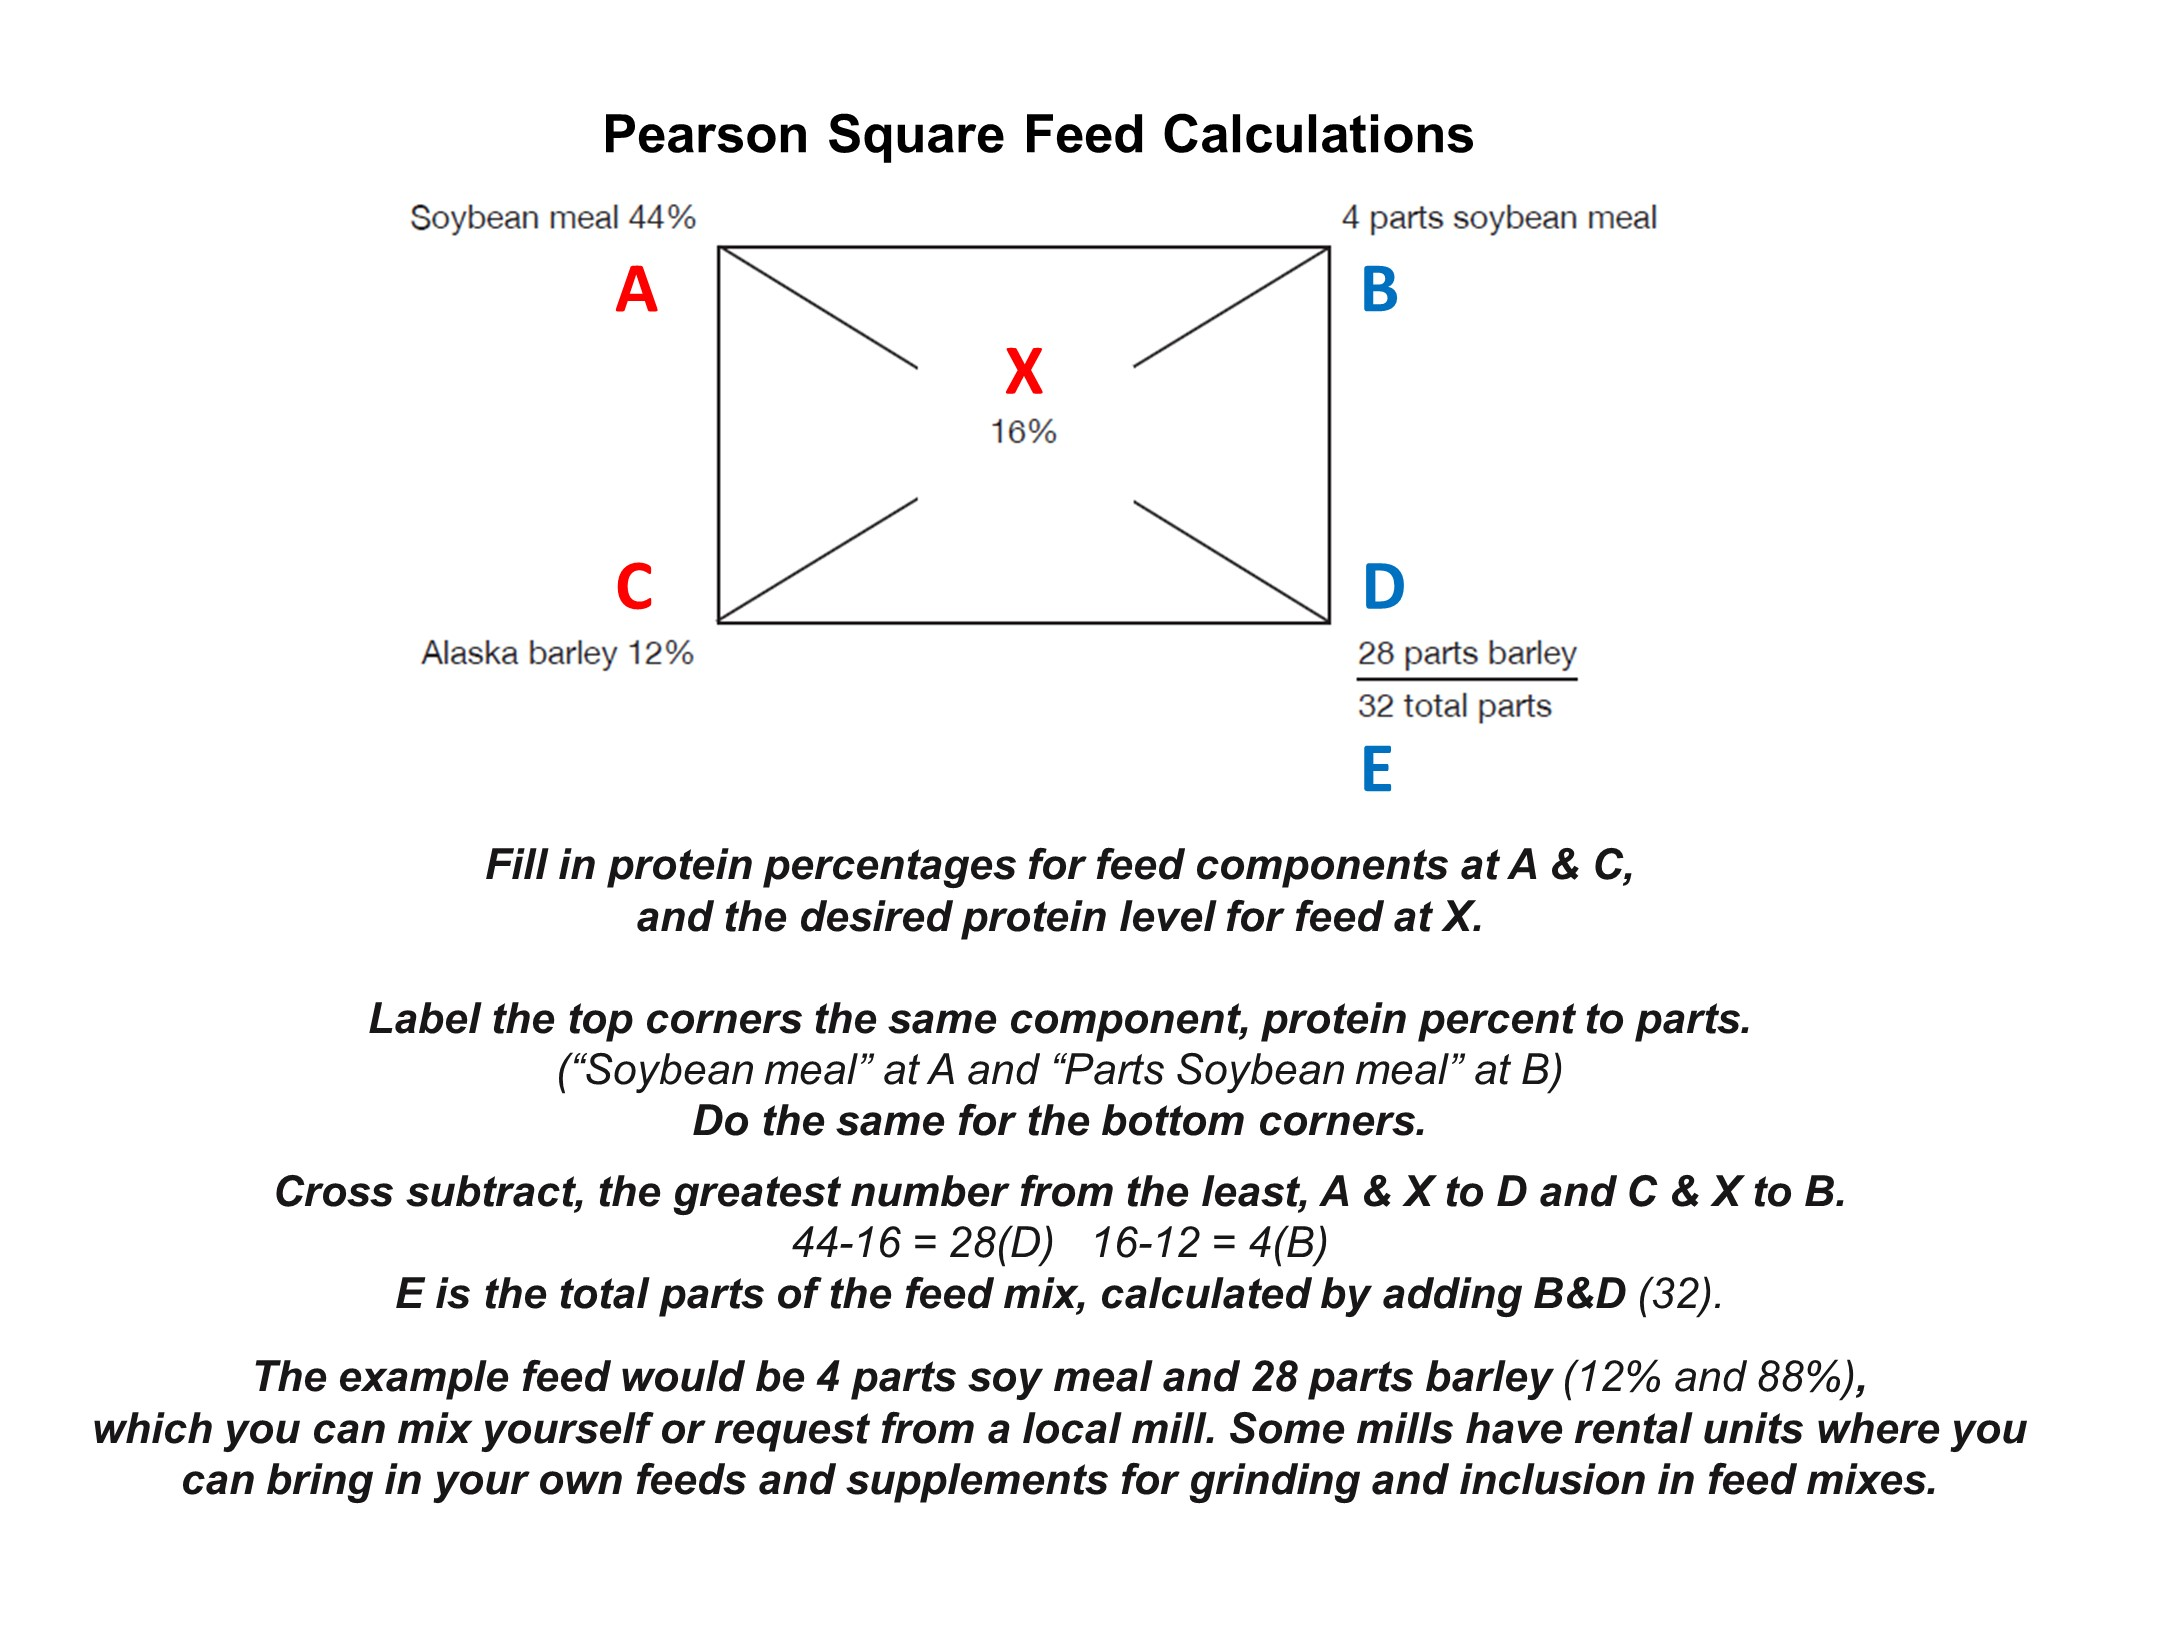 Worksheets Pearson Square Worksheet calculating livestock feed will you have enough the prepper pearson square with expla